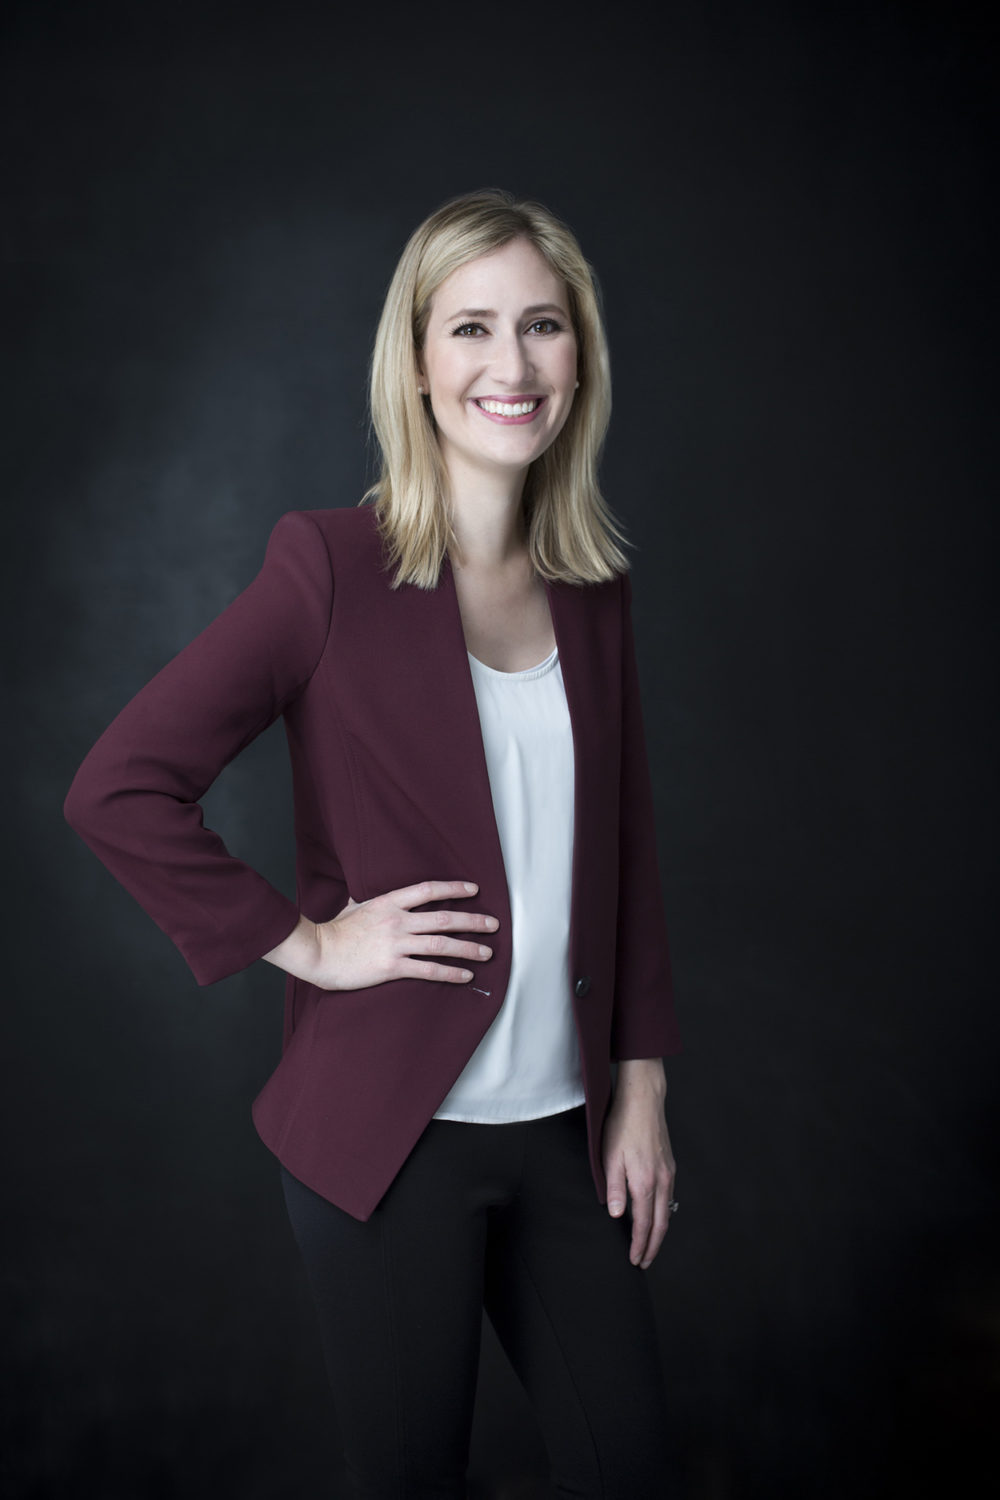 calgary-womens-corporate-headshot-and-portrait-photographer